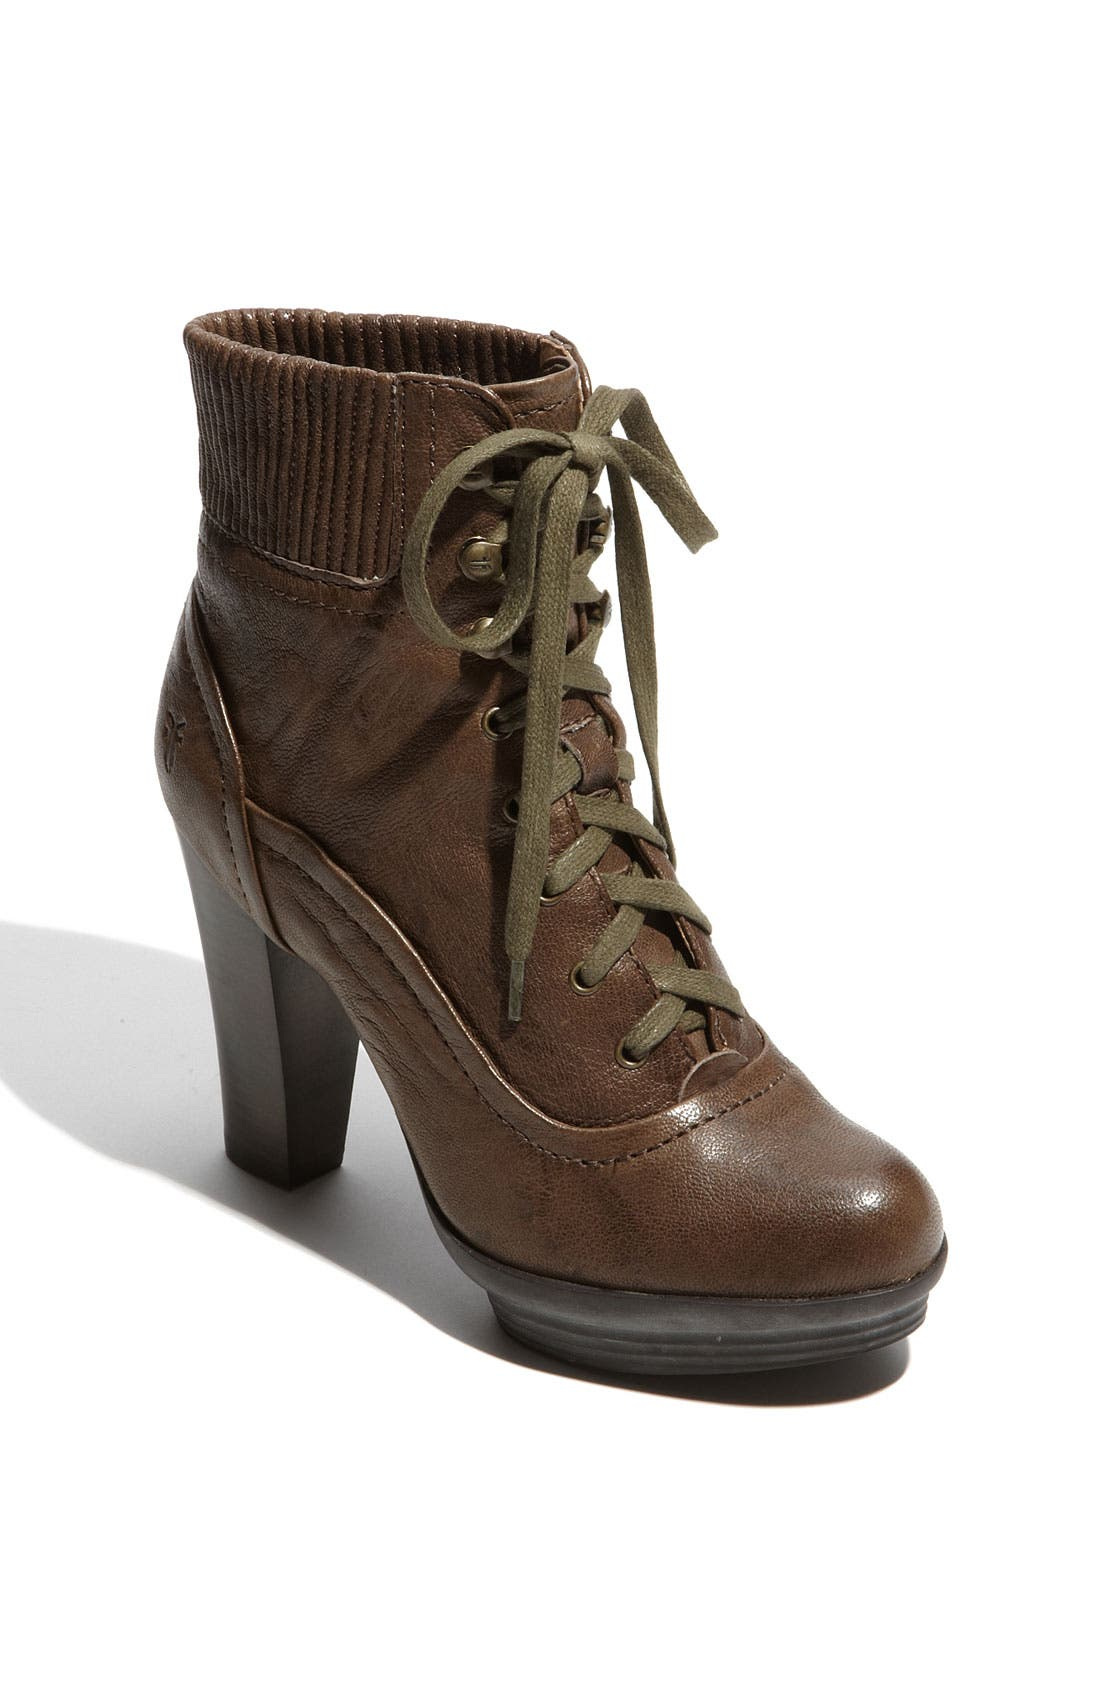 Alternate Image 1 Selected - Frye 'Mimi' Lace-Up Bootie